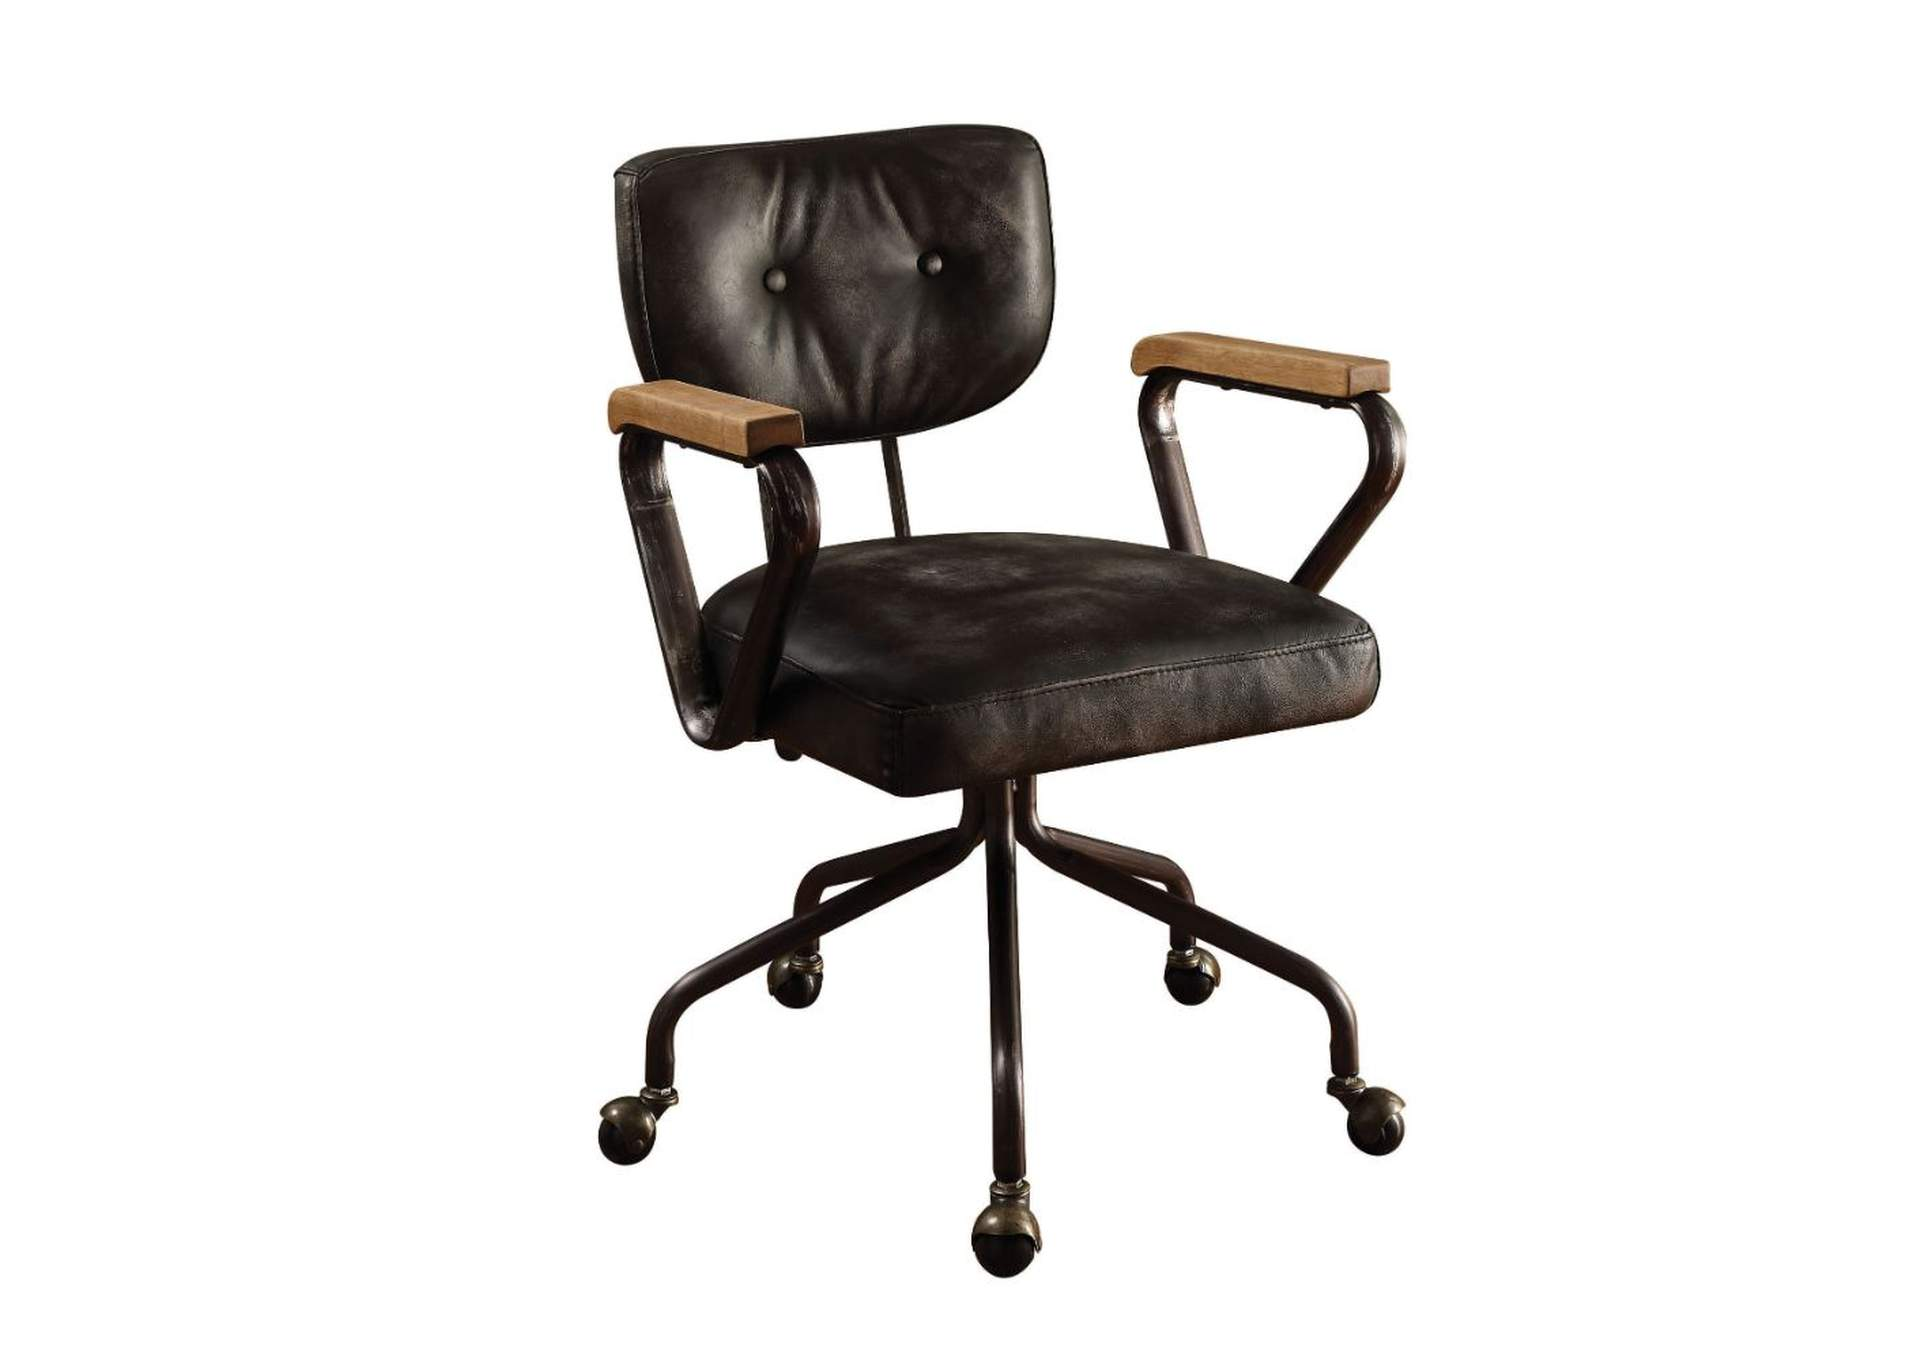 Hallie Vintage Black Top Grain Leather Executive Office Chair,Acme